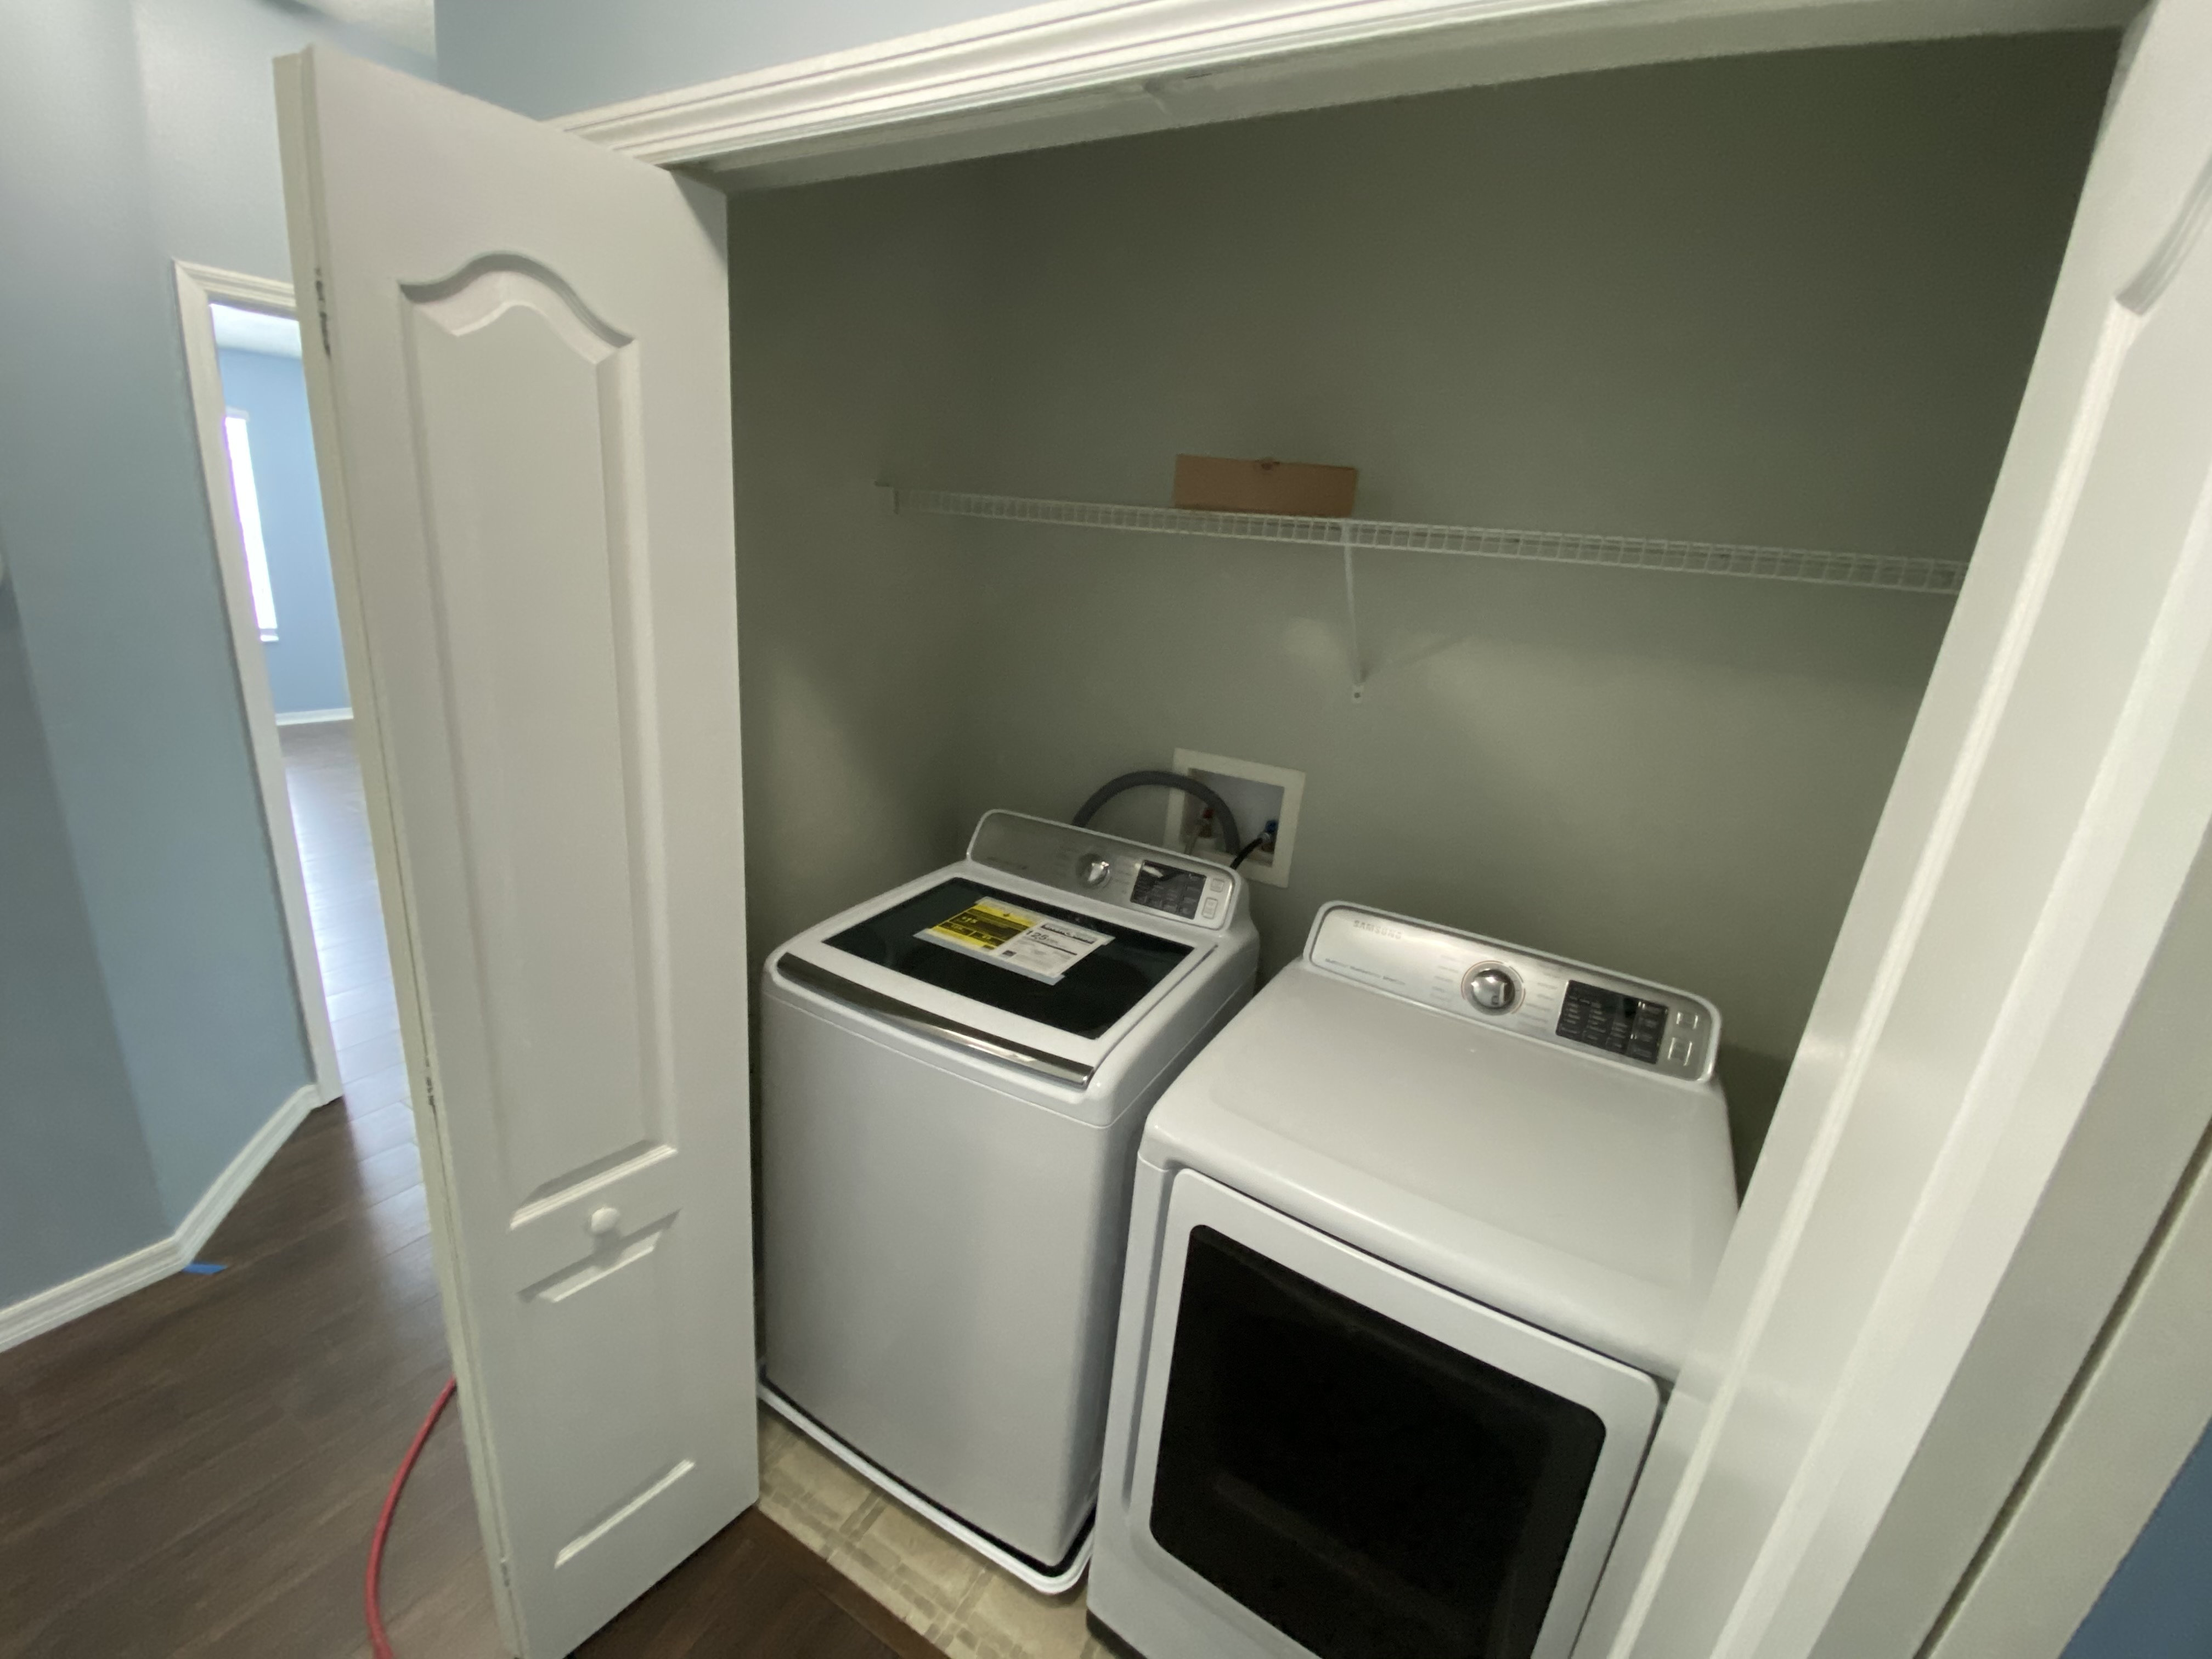 Laundry Area with New Washer and Dryer